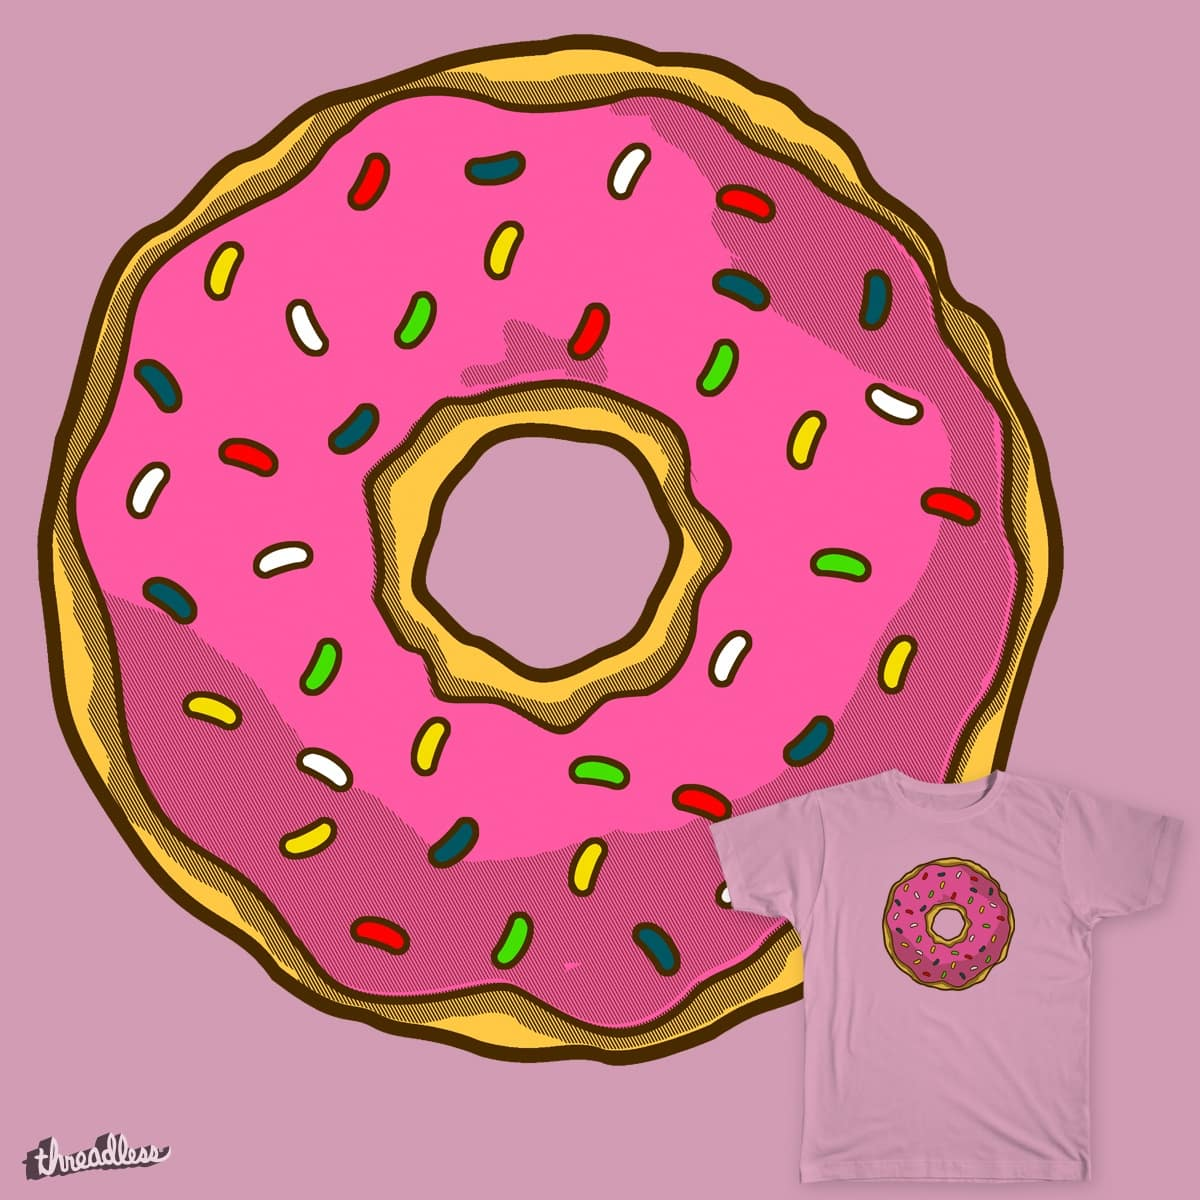 Donut by Melonseta on Threadless